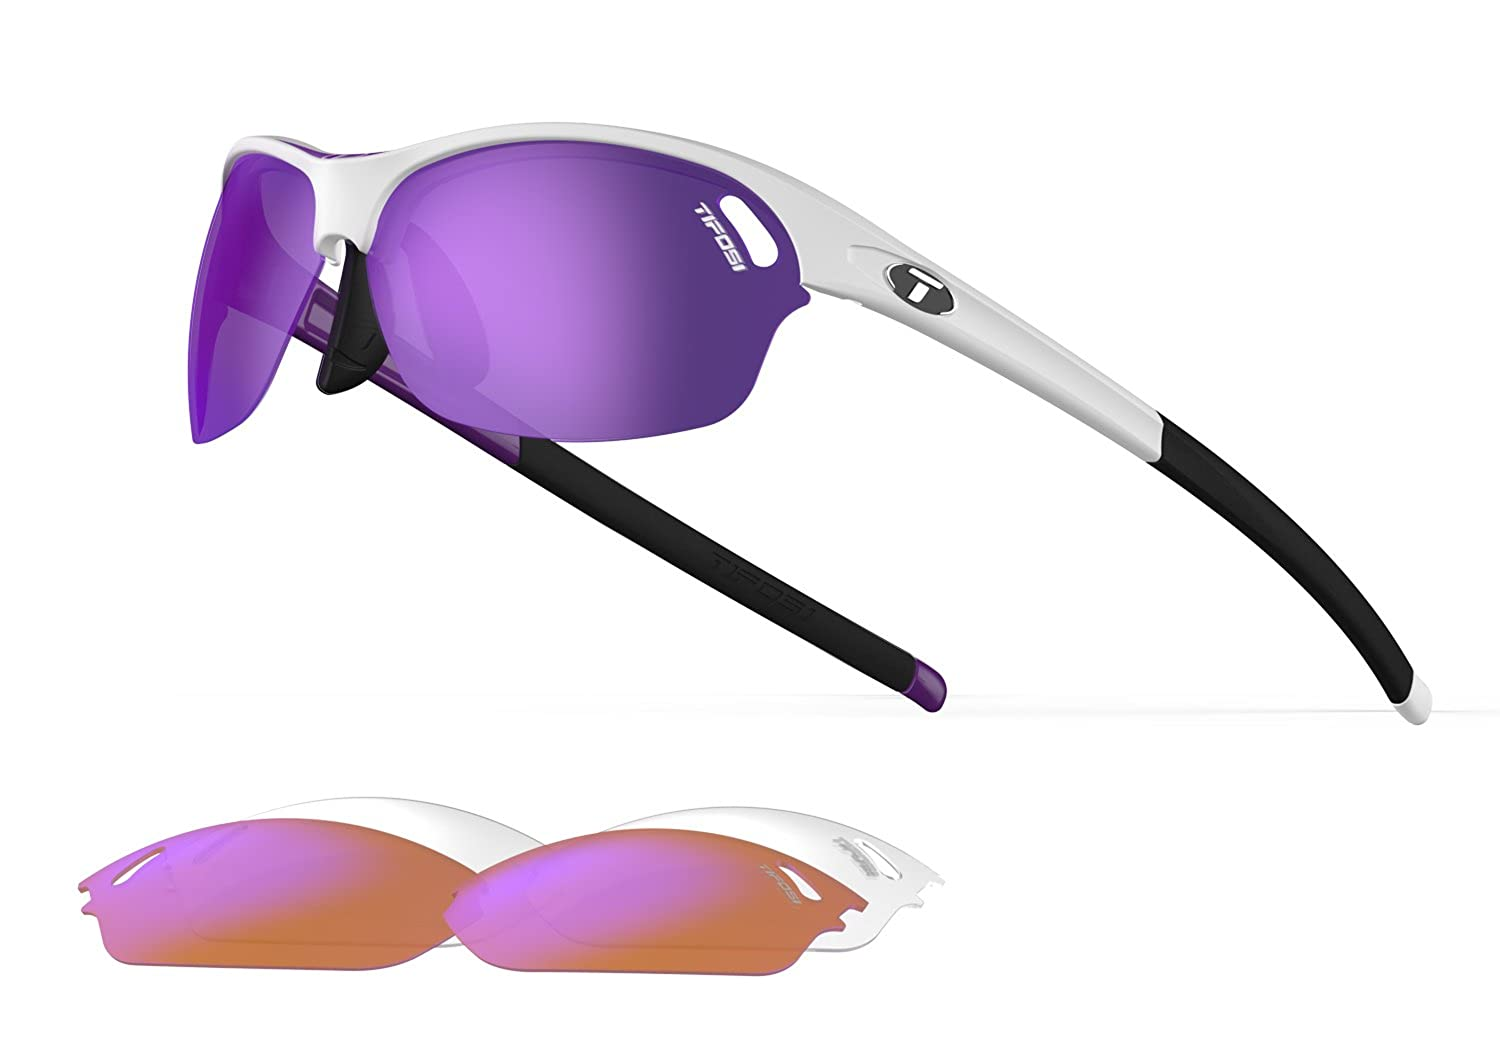 f97aa72526 Amazon.com  Tifosi Wasp Wrap Sunglasses Crystal Clear 140 mm  Clothing